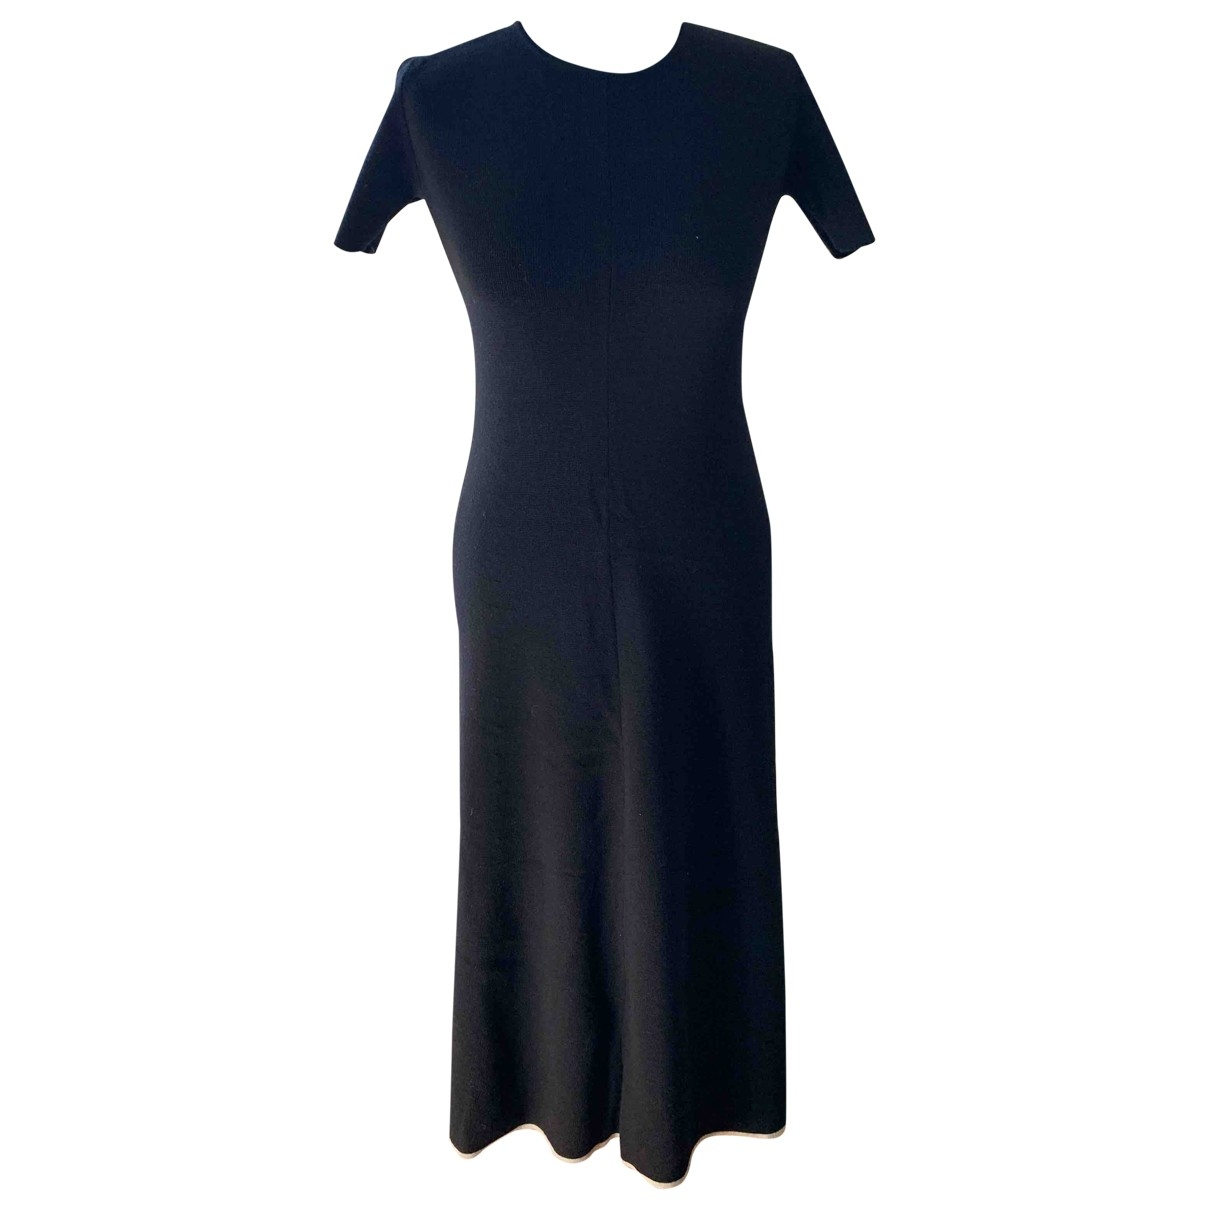 Lemaire X Uniqlo \N Black Wool dress for Women 36 FR